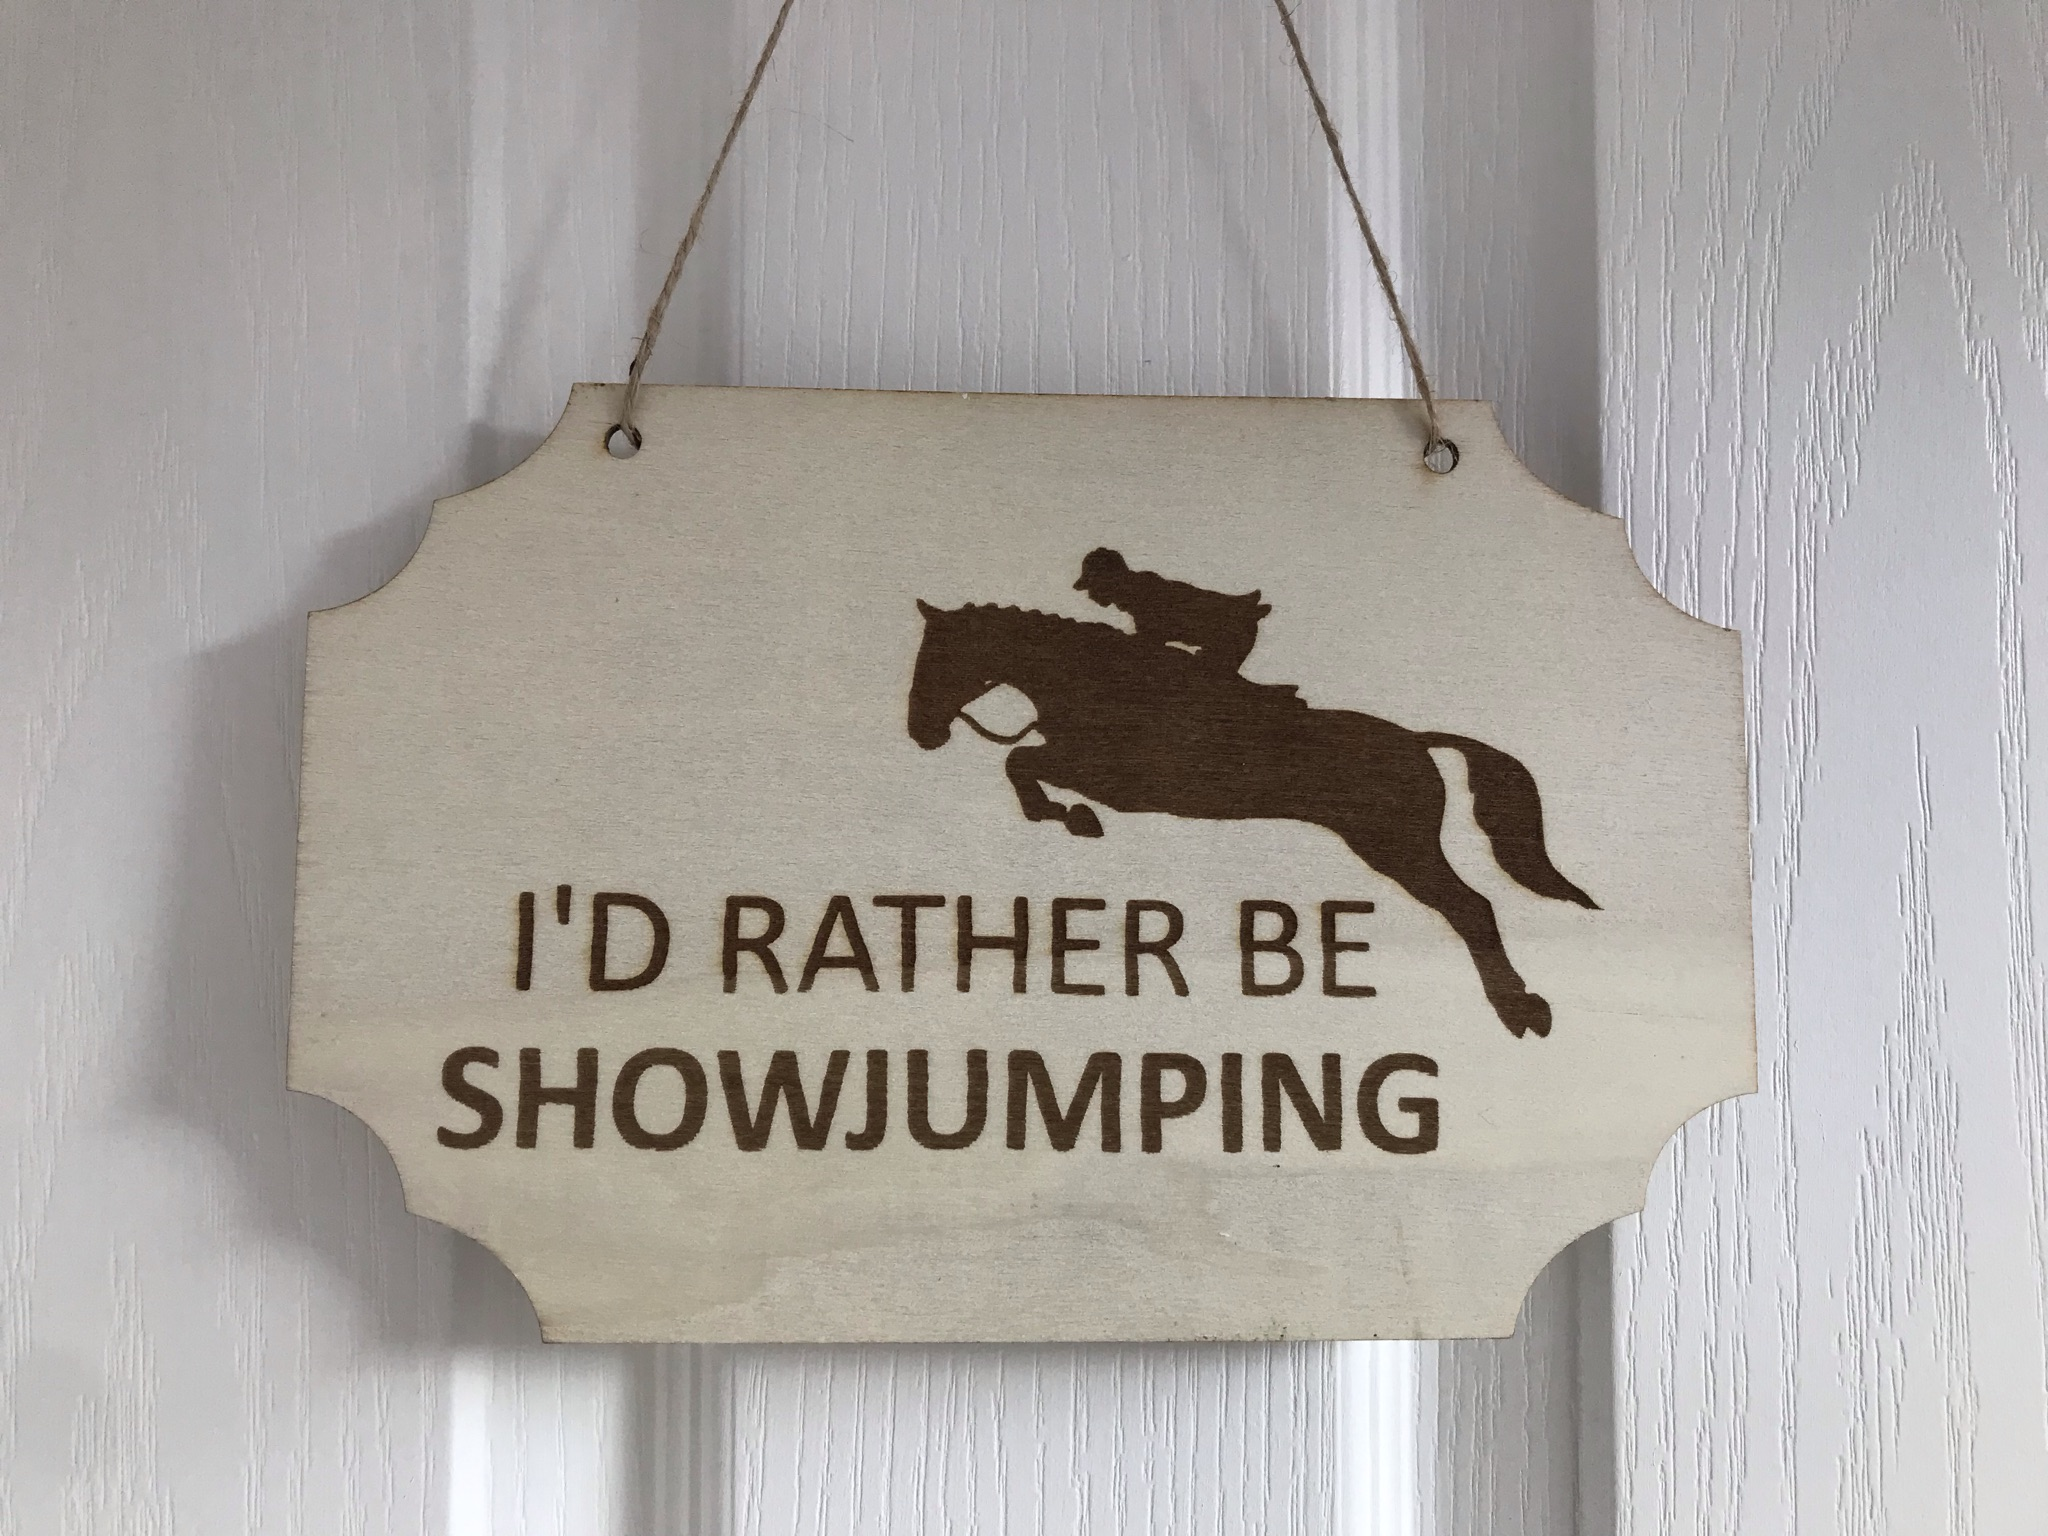 Rather be showjumping